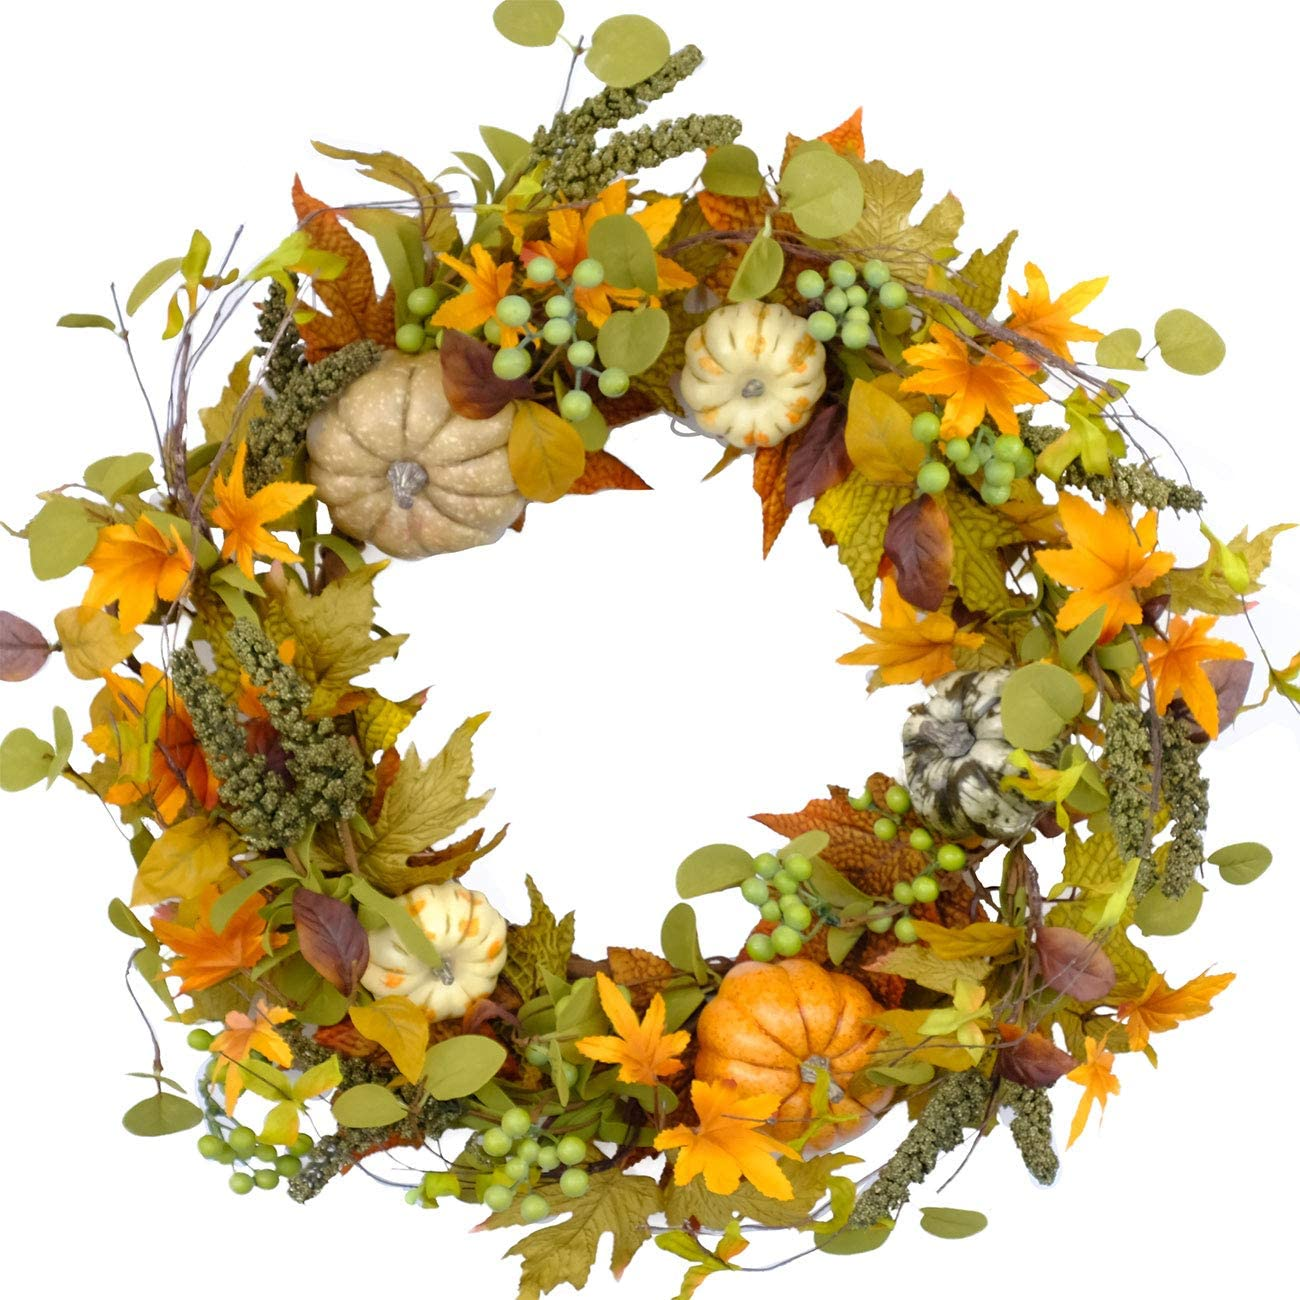 Bibelot 20 inch Autumn Wreath -Pumpkin and Maple Leaf Wreath with Greeen Berry for Front Door Hanging Wall Decoration,Fall Harvest,Thanksgiving, Home Decor